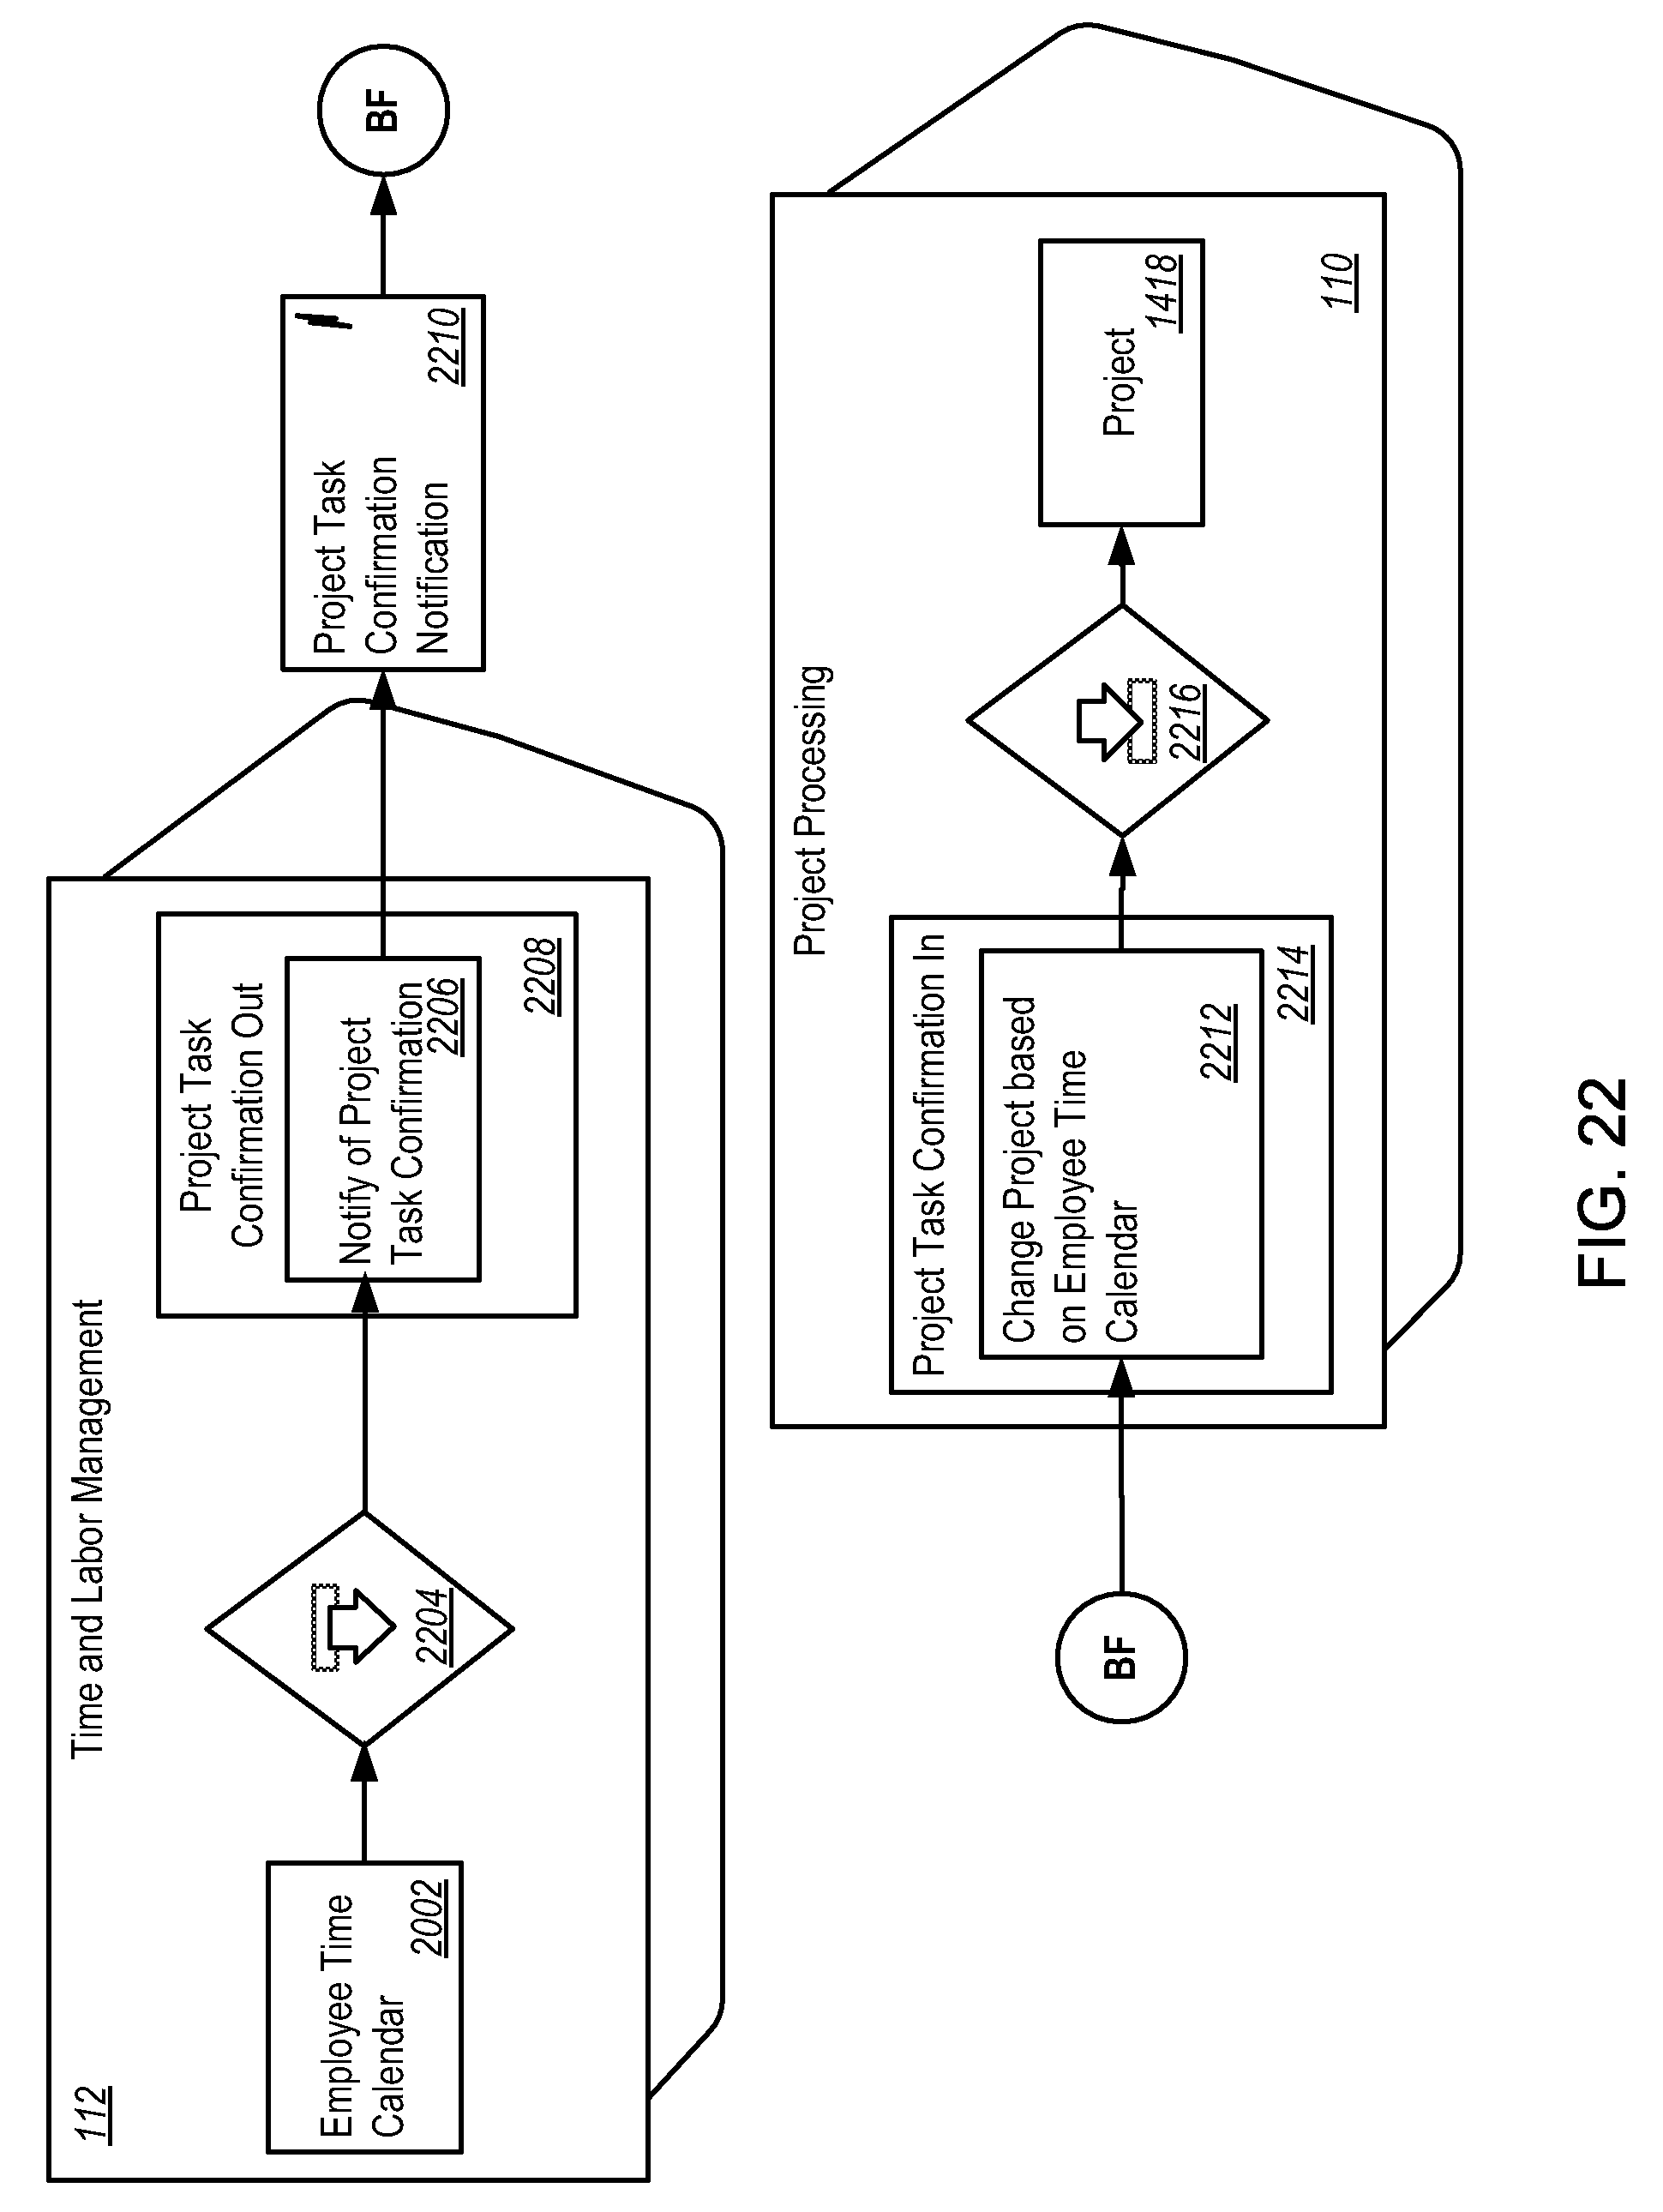 Sample Consulting Invoice Pdf Patent Us  Architectural Design For Selling Projectbased  Scone Receipt with Quickbooks Receipt Scanner Patent Drawing How To Make Your Own Receipt Word